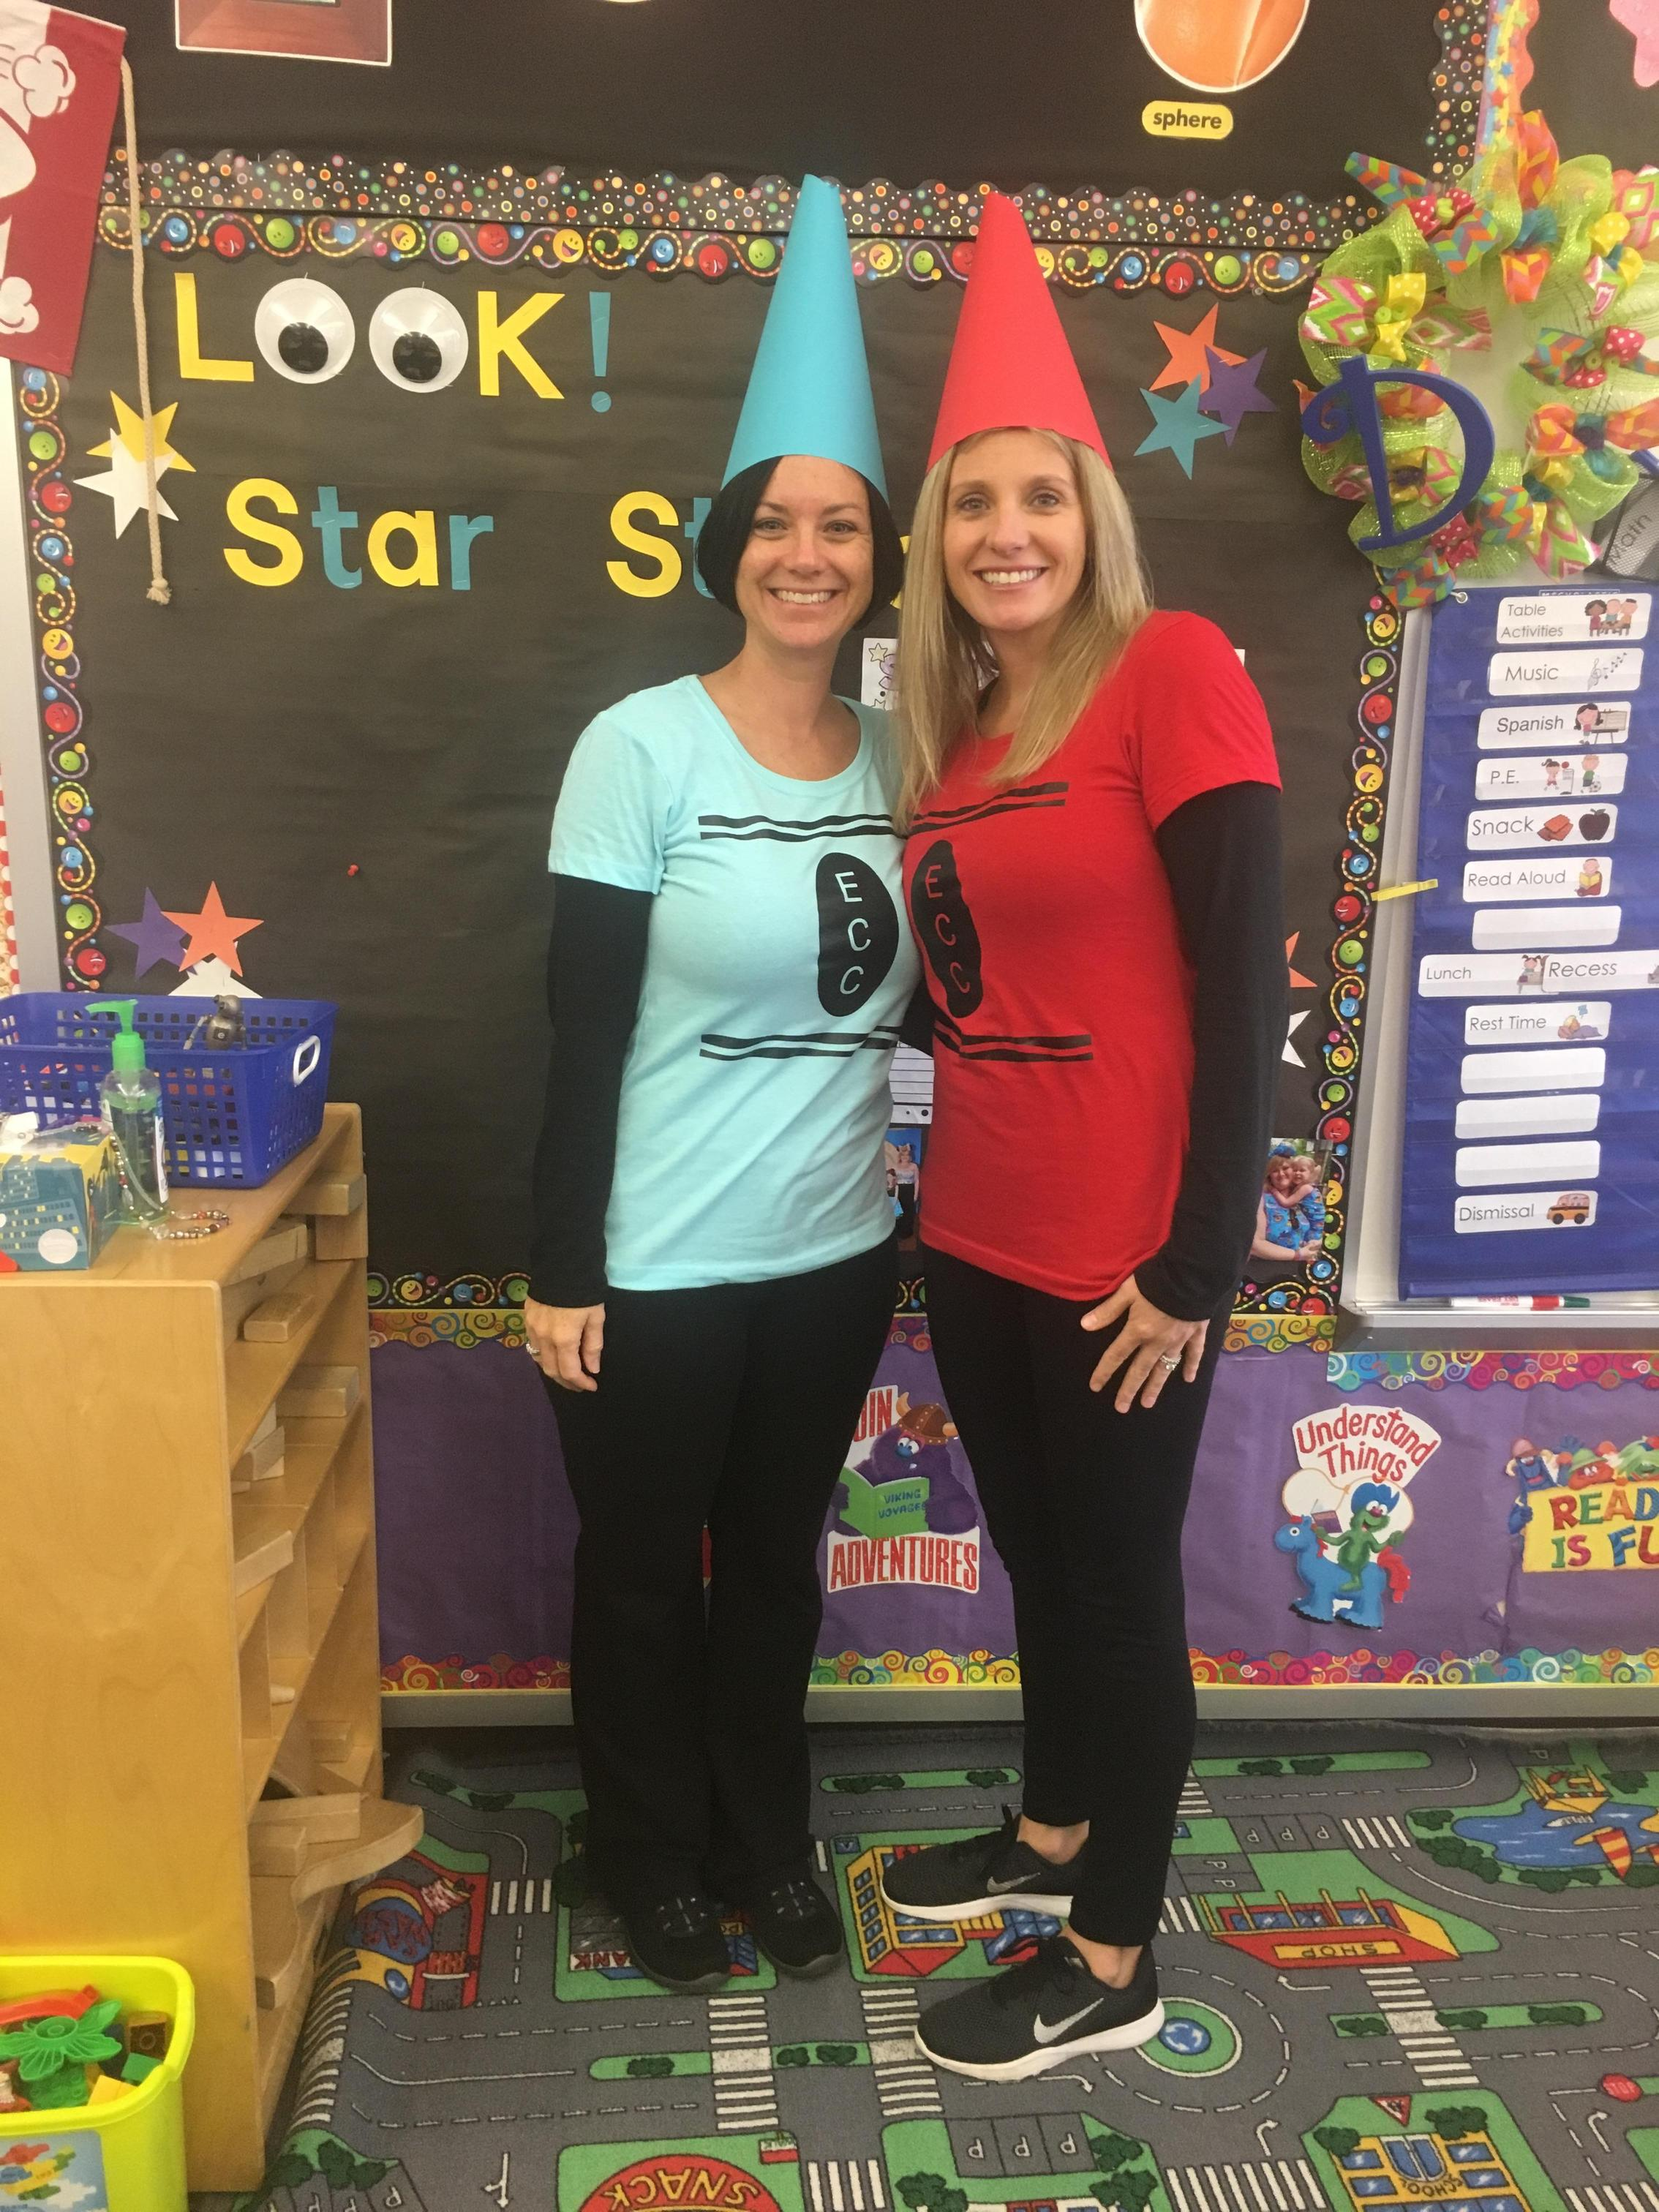 Mrs. Duffy and Mrs. S Halloween costumes